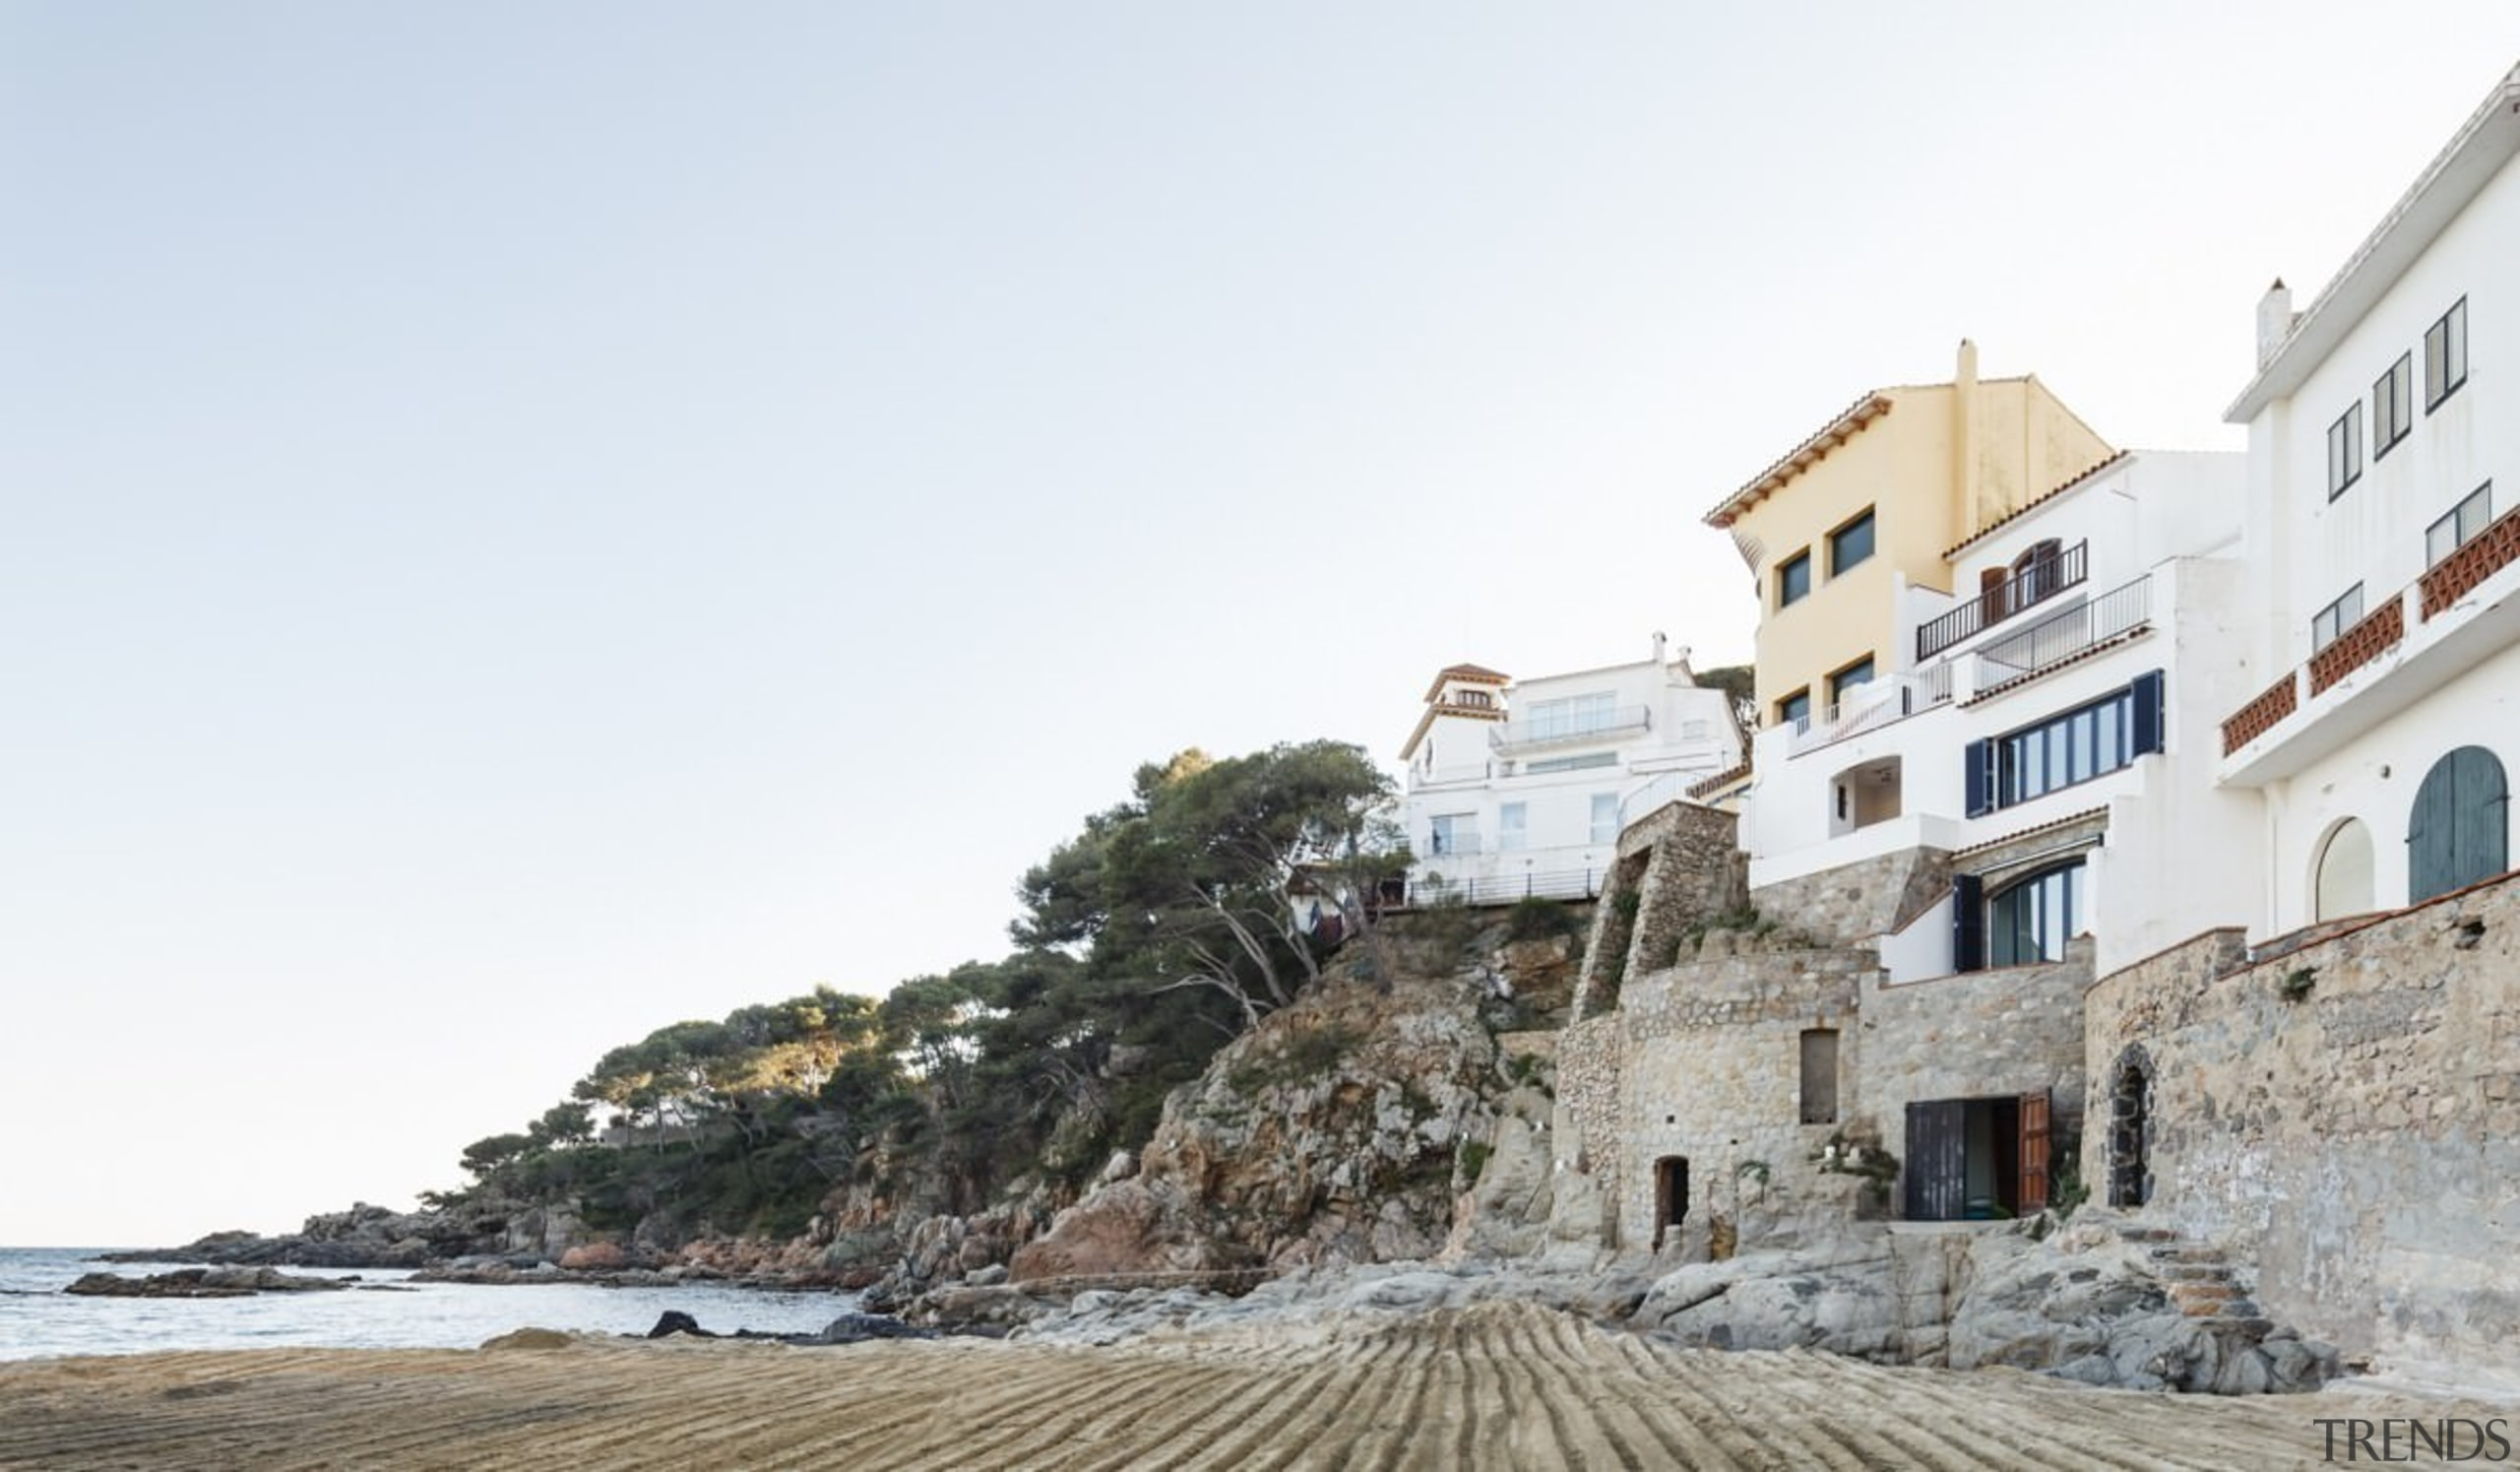 A view of the property from down on beach, building, coast, coastal and oceanic landforms, property, sea, sky, terrain, tourism, white